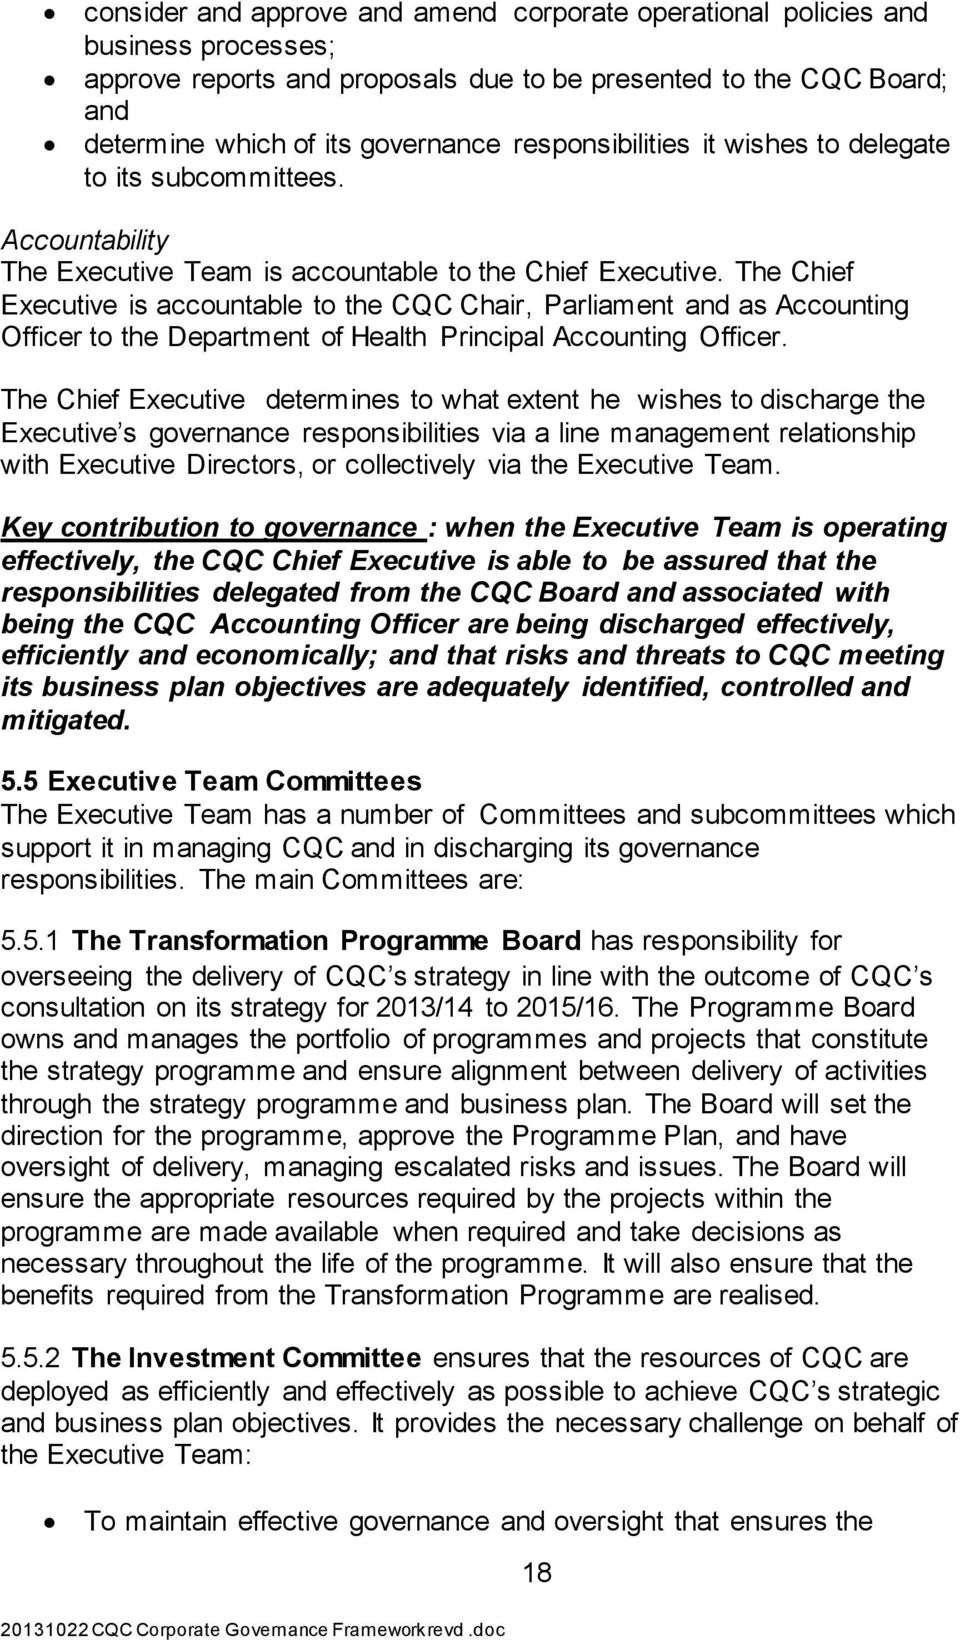 The Chief Executive is accountable to the CQC Chair, Parliament and as Accounting Officer to the Department of Health Principal Accounting Officer.